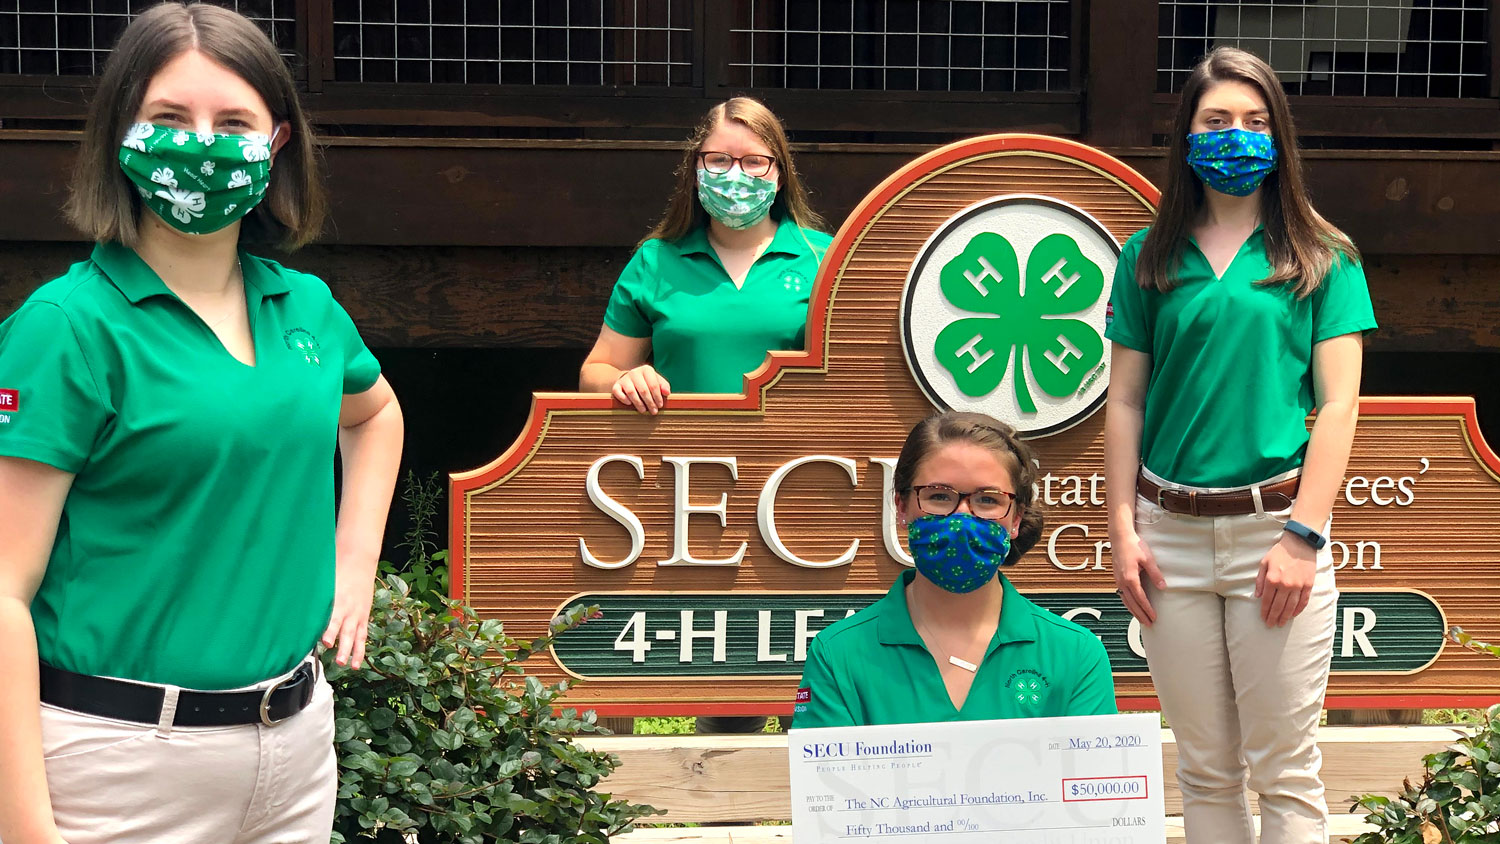 Group of 4-H staff members holding a check from SECU Foundation for $50,000